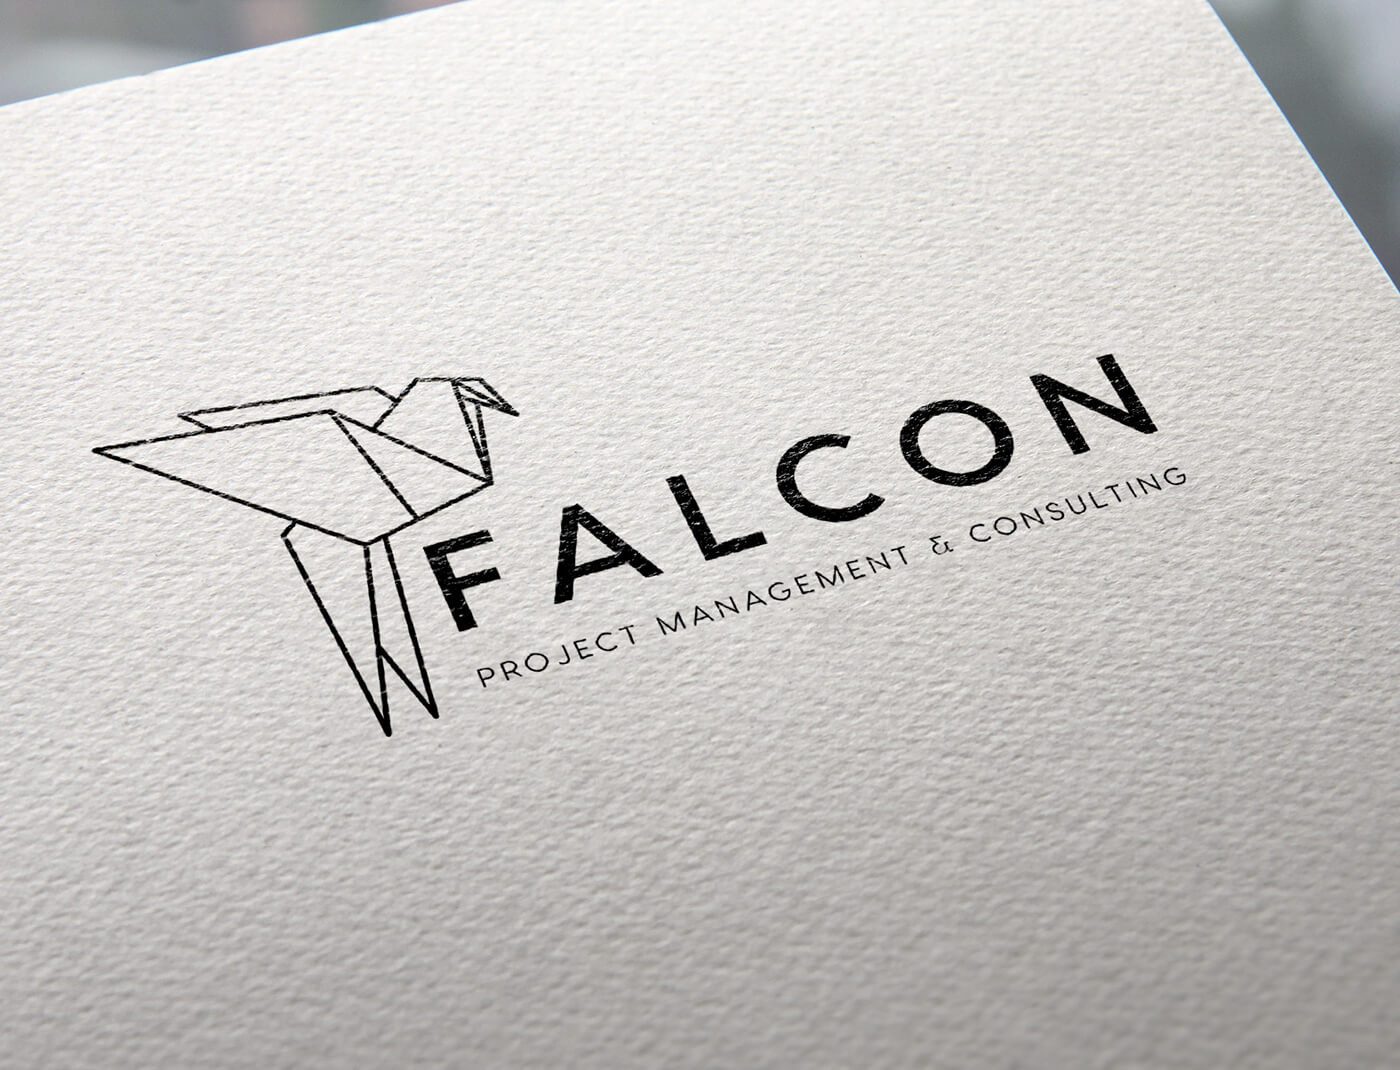 Falcon Projects & Consulting